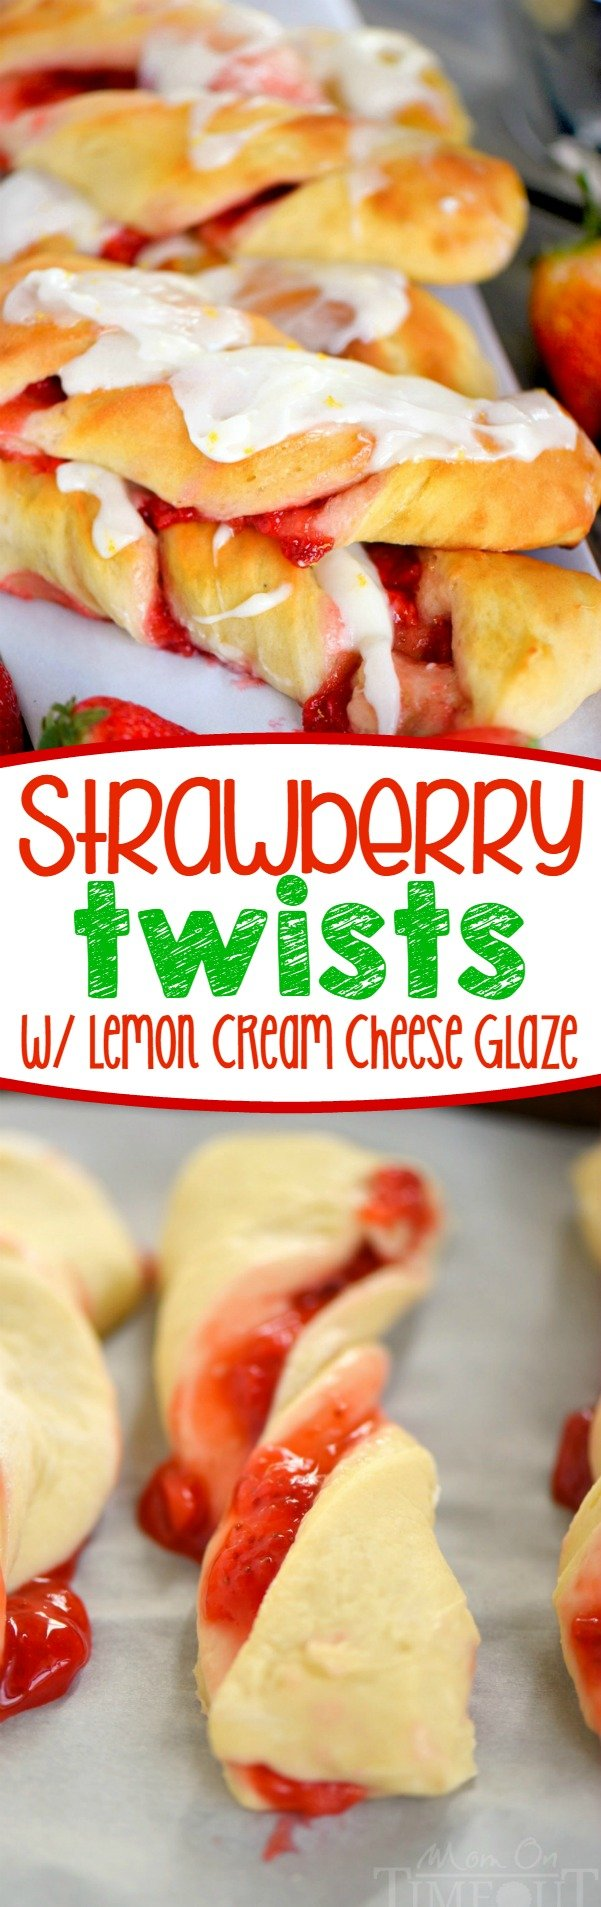 Strawberry Twists with Lemon Cream Cheese Glaze are sure to become your new favorite addition to Sunday brunch! A homemade strawberry filling makes these twists extra special and delicious and the lemon cream cheese glaze is going to knock your socks off! | Mom On Timeout